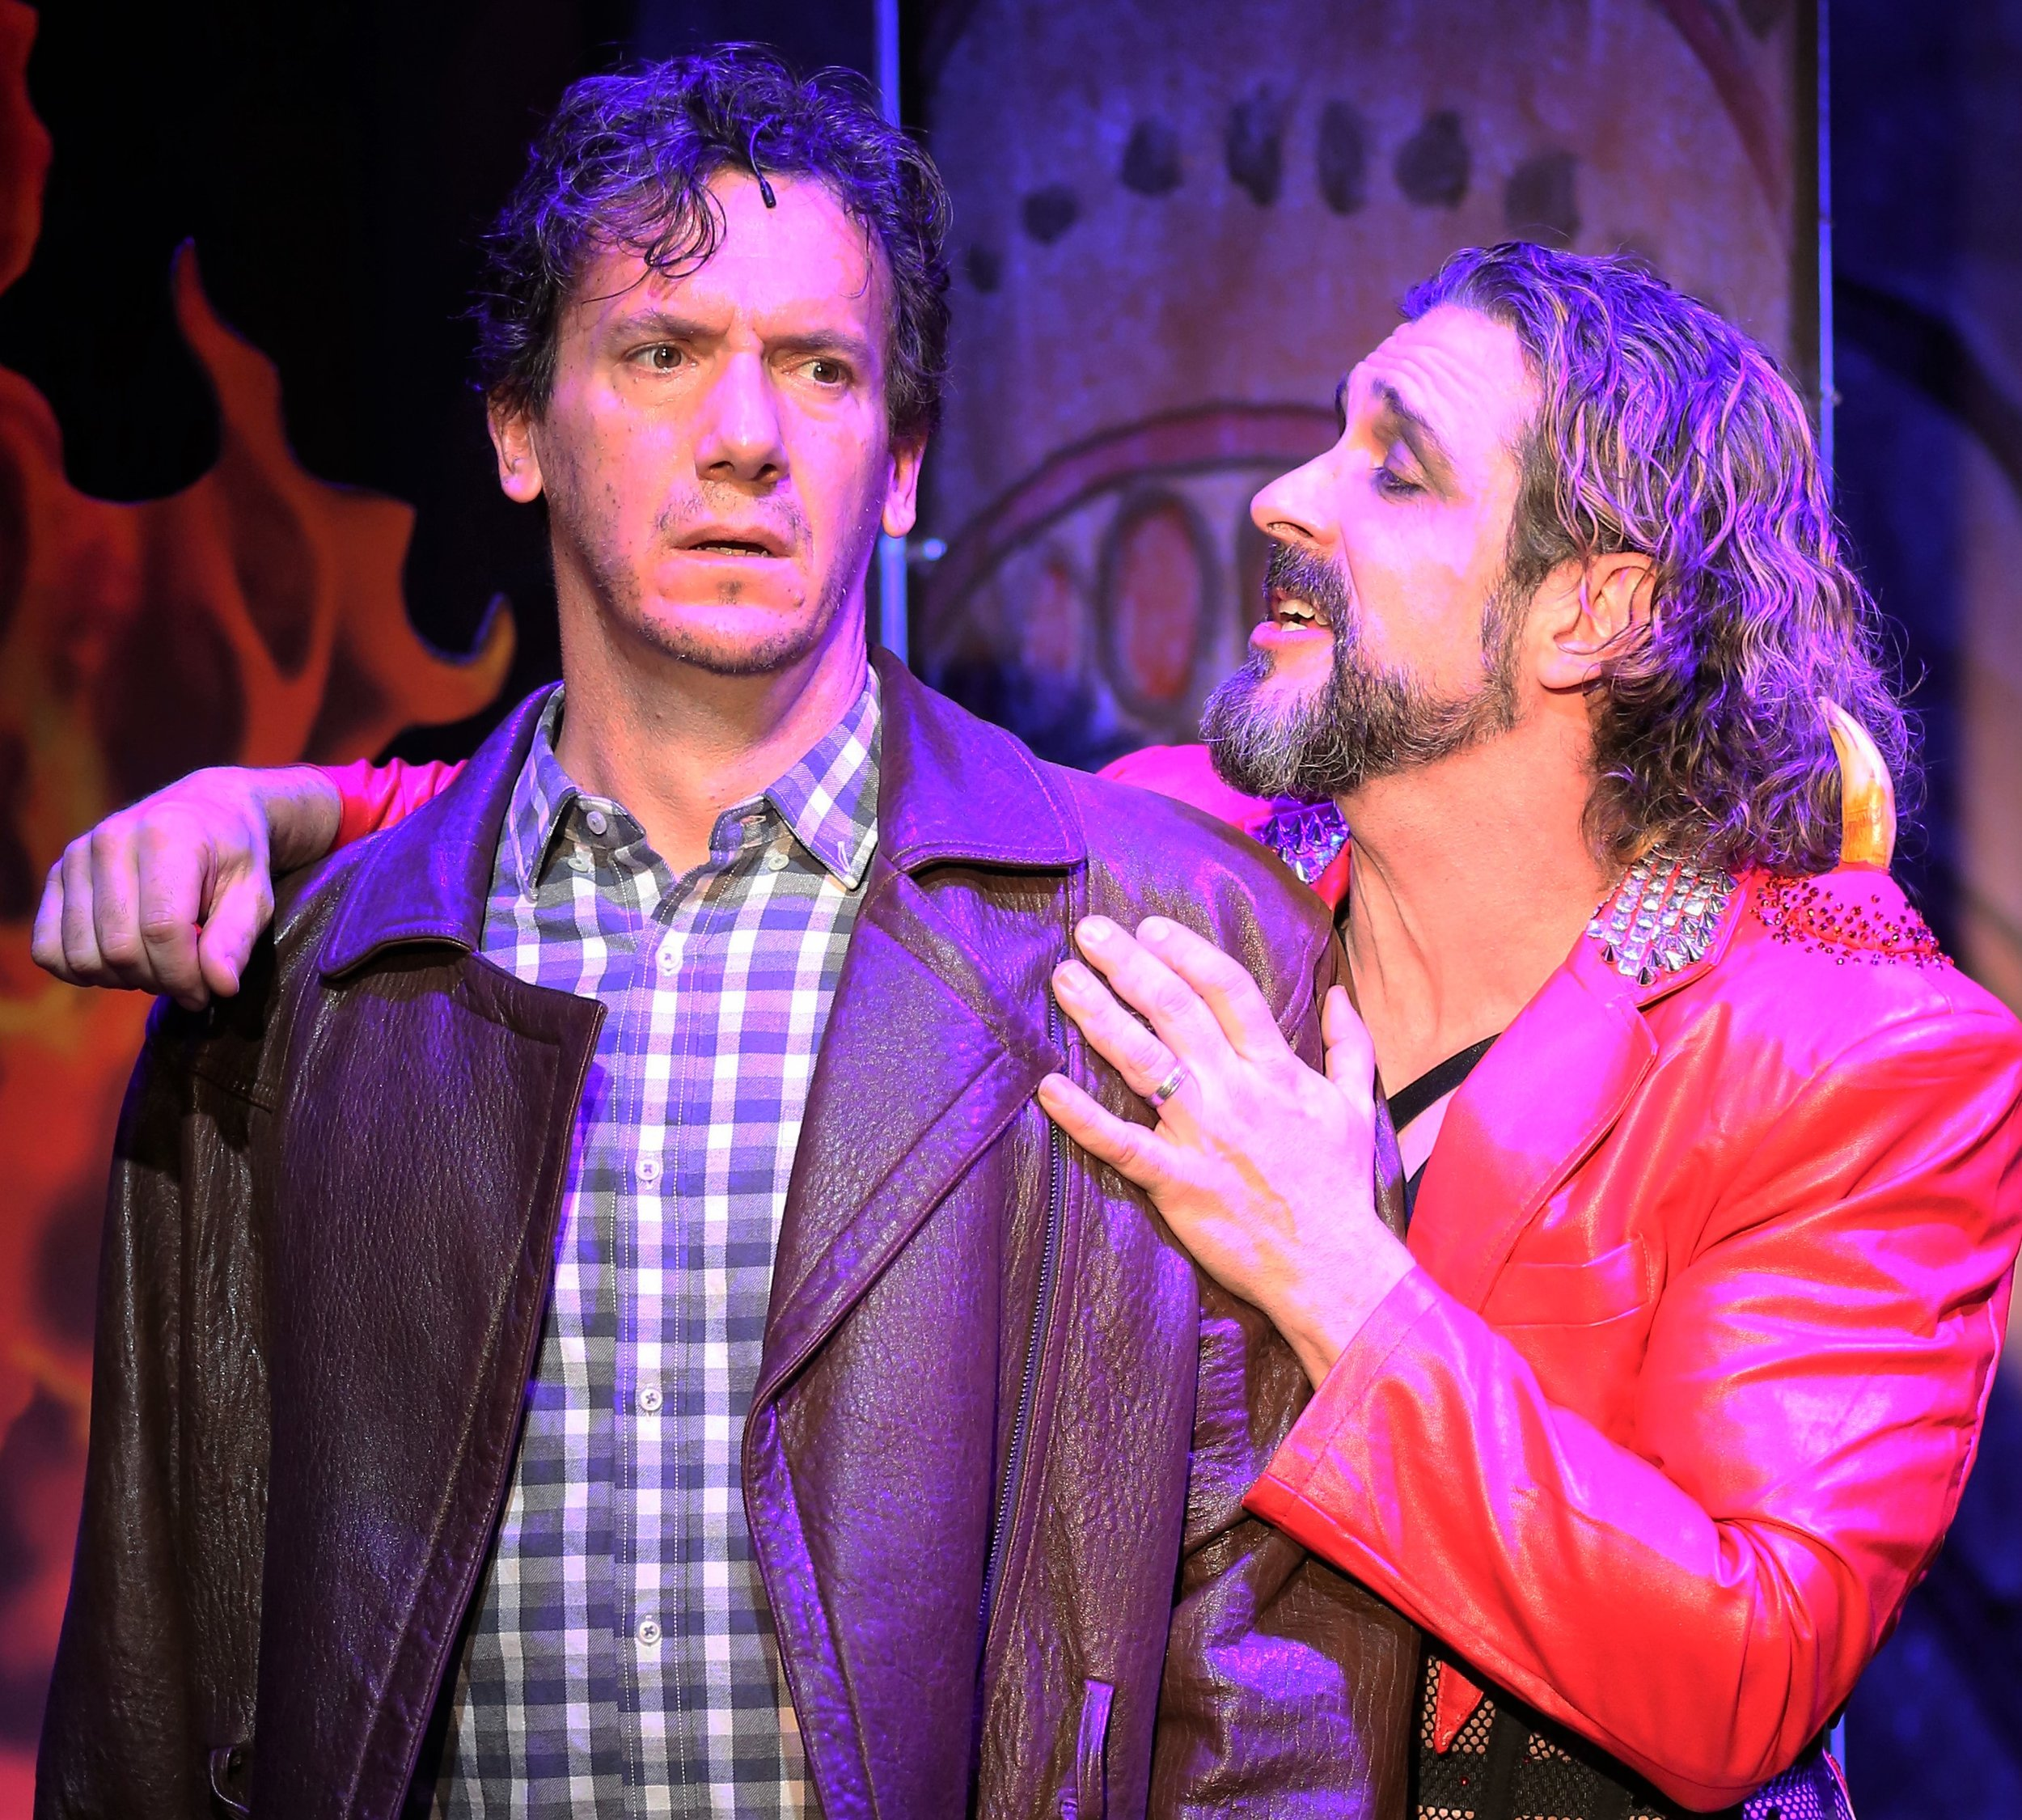 Richard (Scott Ahearn) in the hands of Lucifer (Brandon Williams) in Gary Apple's  Christmas in Hell . Top: Galiana (Lori Hammel) and Carl (Zak Risinger) debate entering the gates of Hades. Photographs by Carol Rosegg.